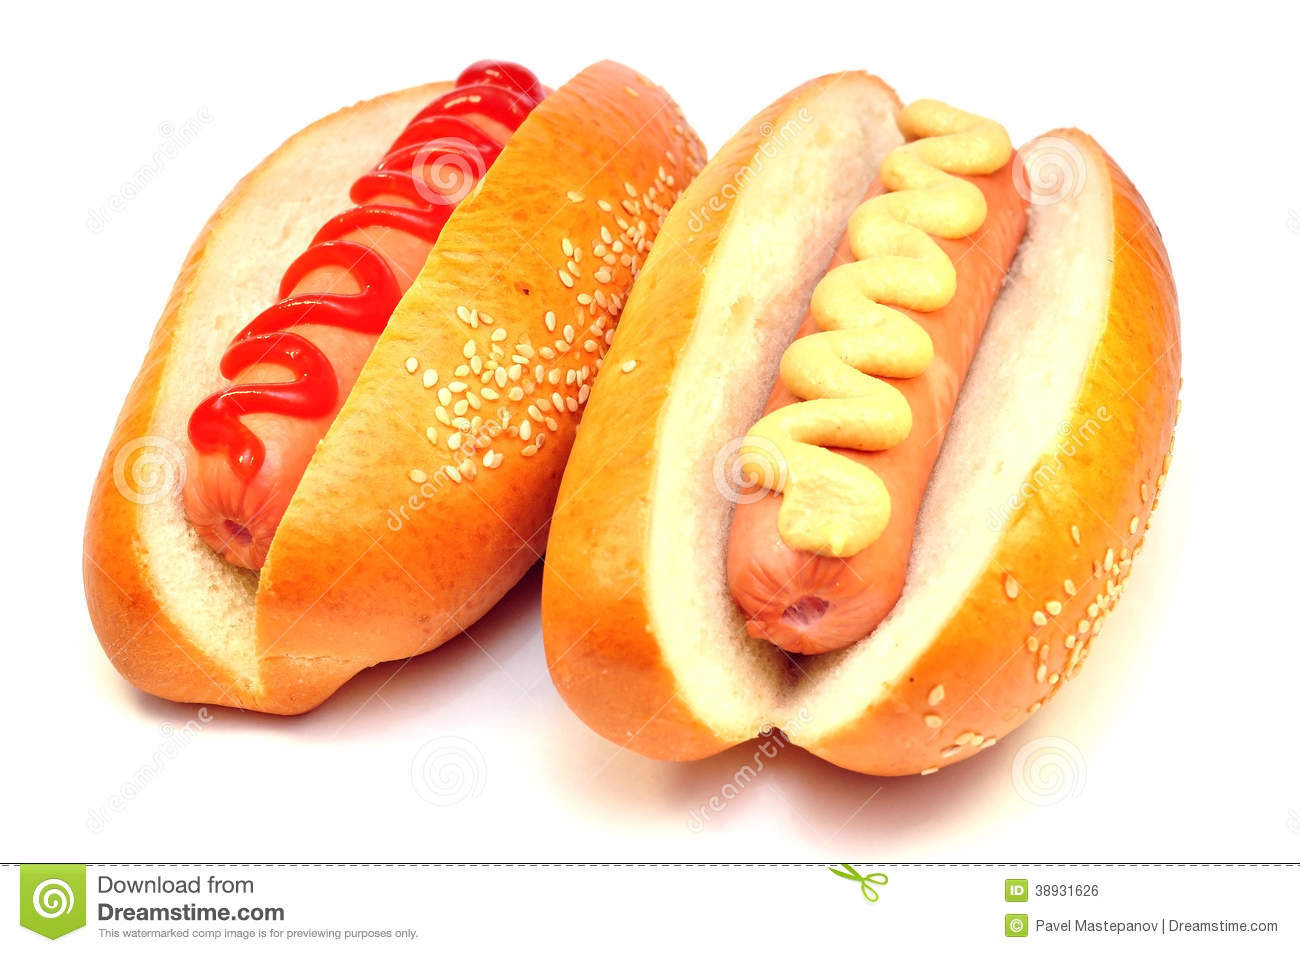 Two Hot Dogs  2 Hot Dogs Bing images